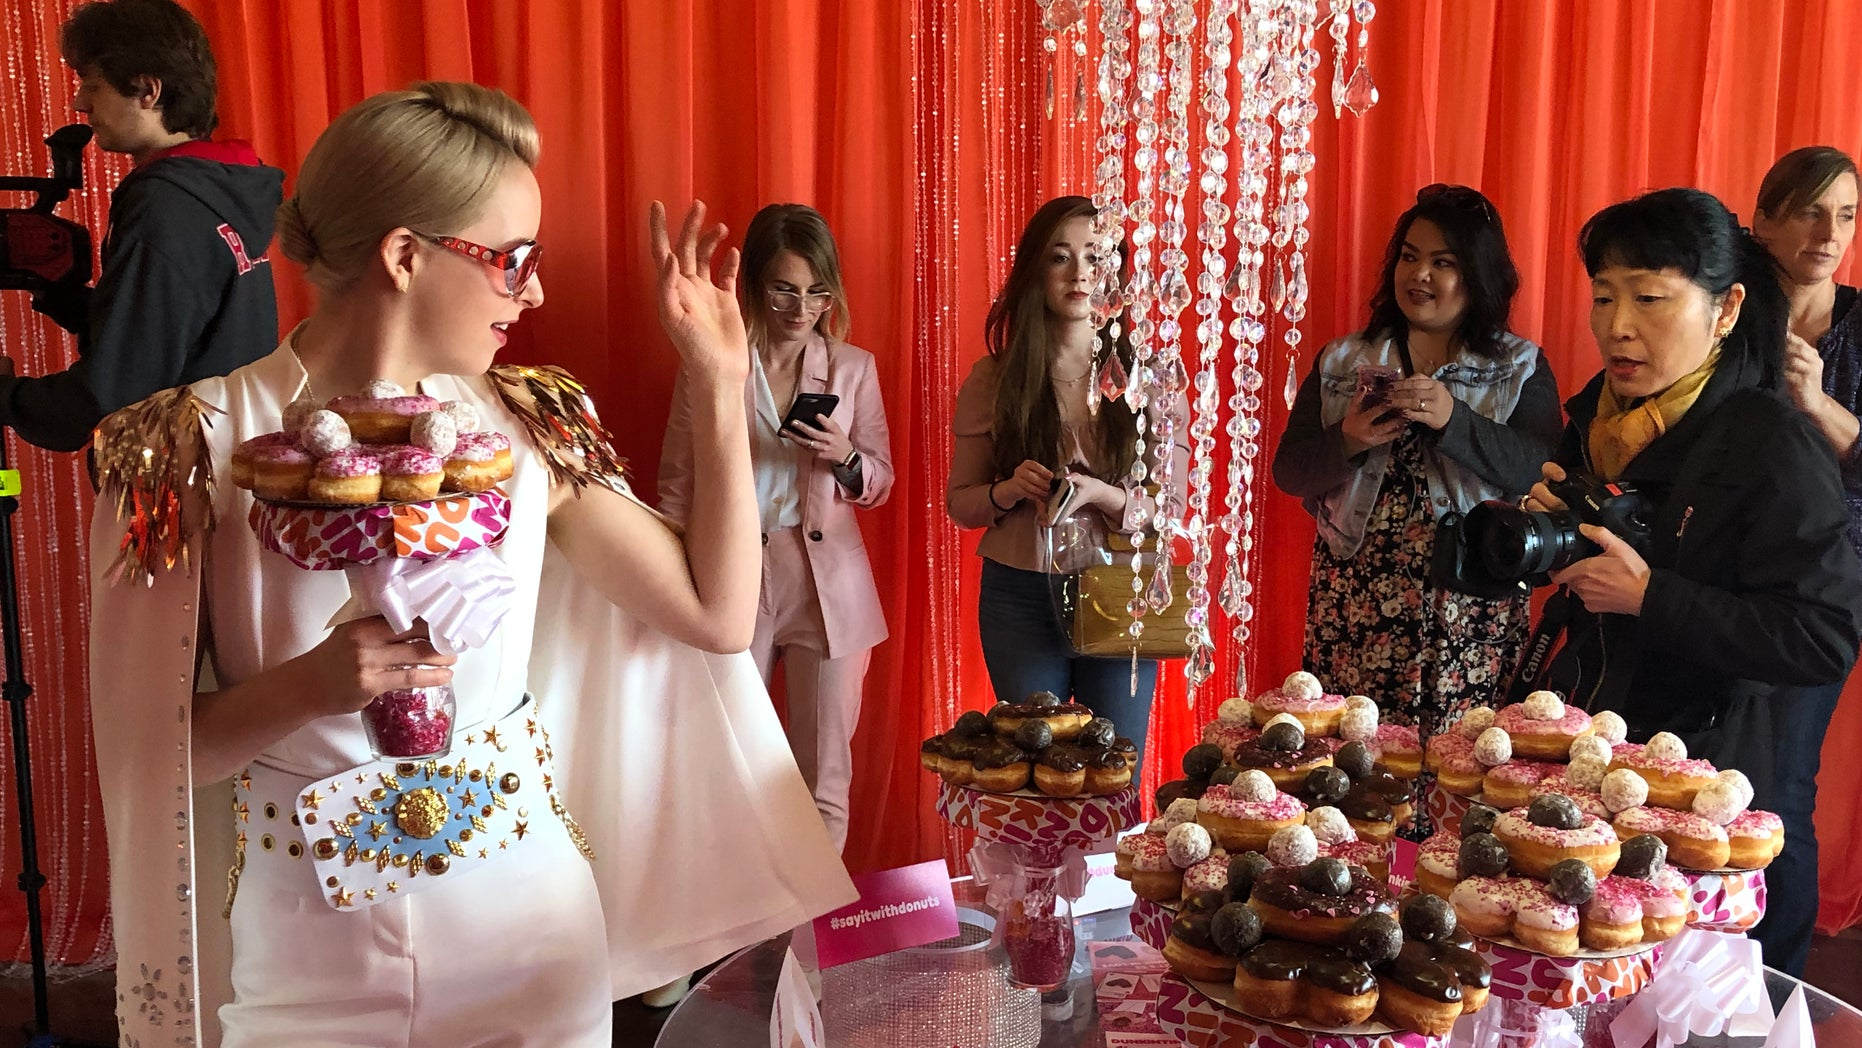 Dunkin' embellished out a matrimony chapel in las Vegas Wednesday afternoon to offer coffee lovers a possibility to get married surrounded by their favorite treats -- and a doughnut bouquet.